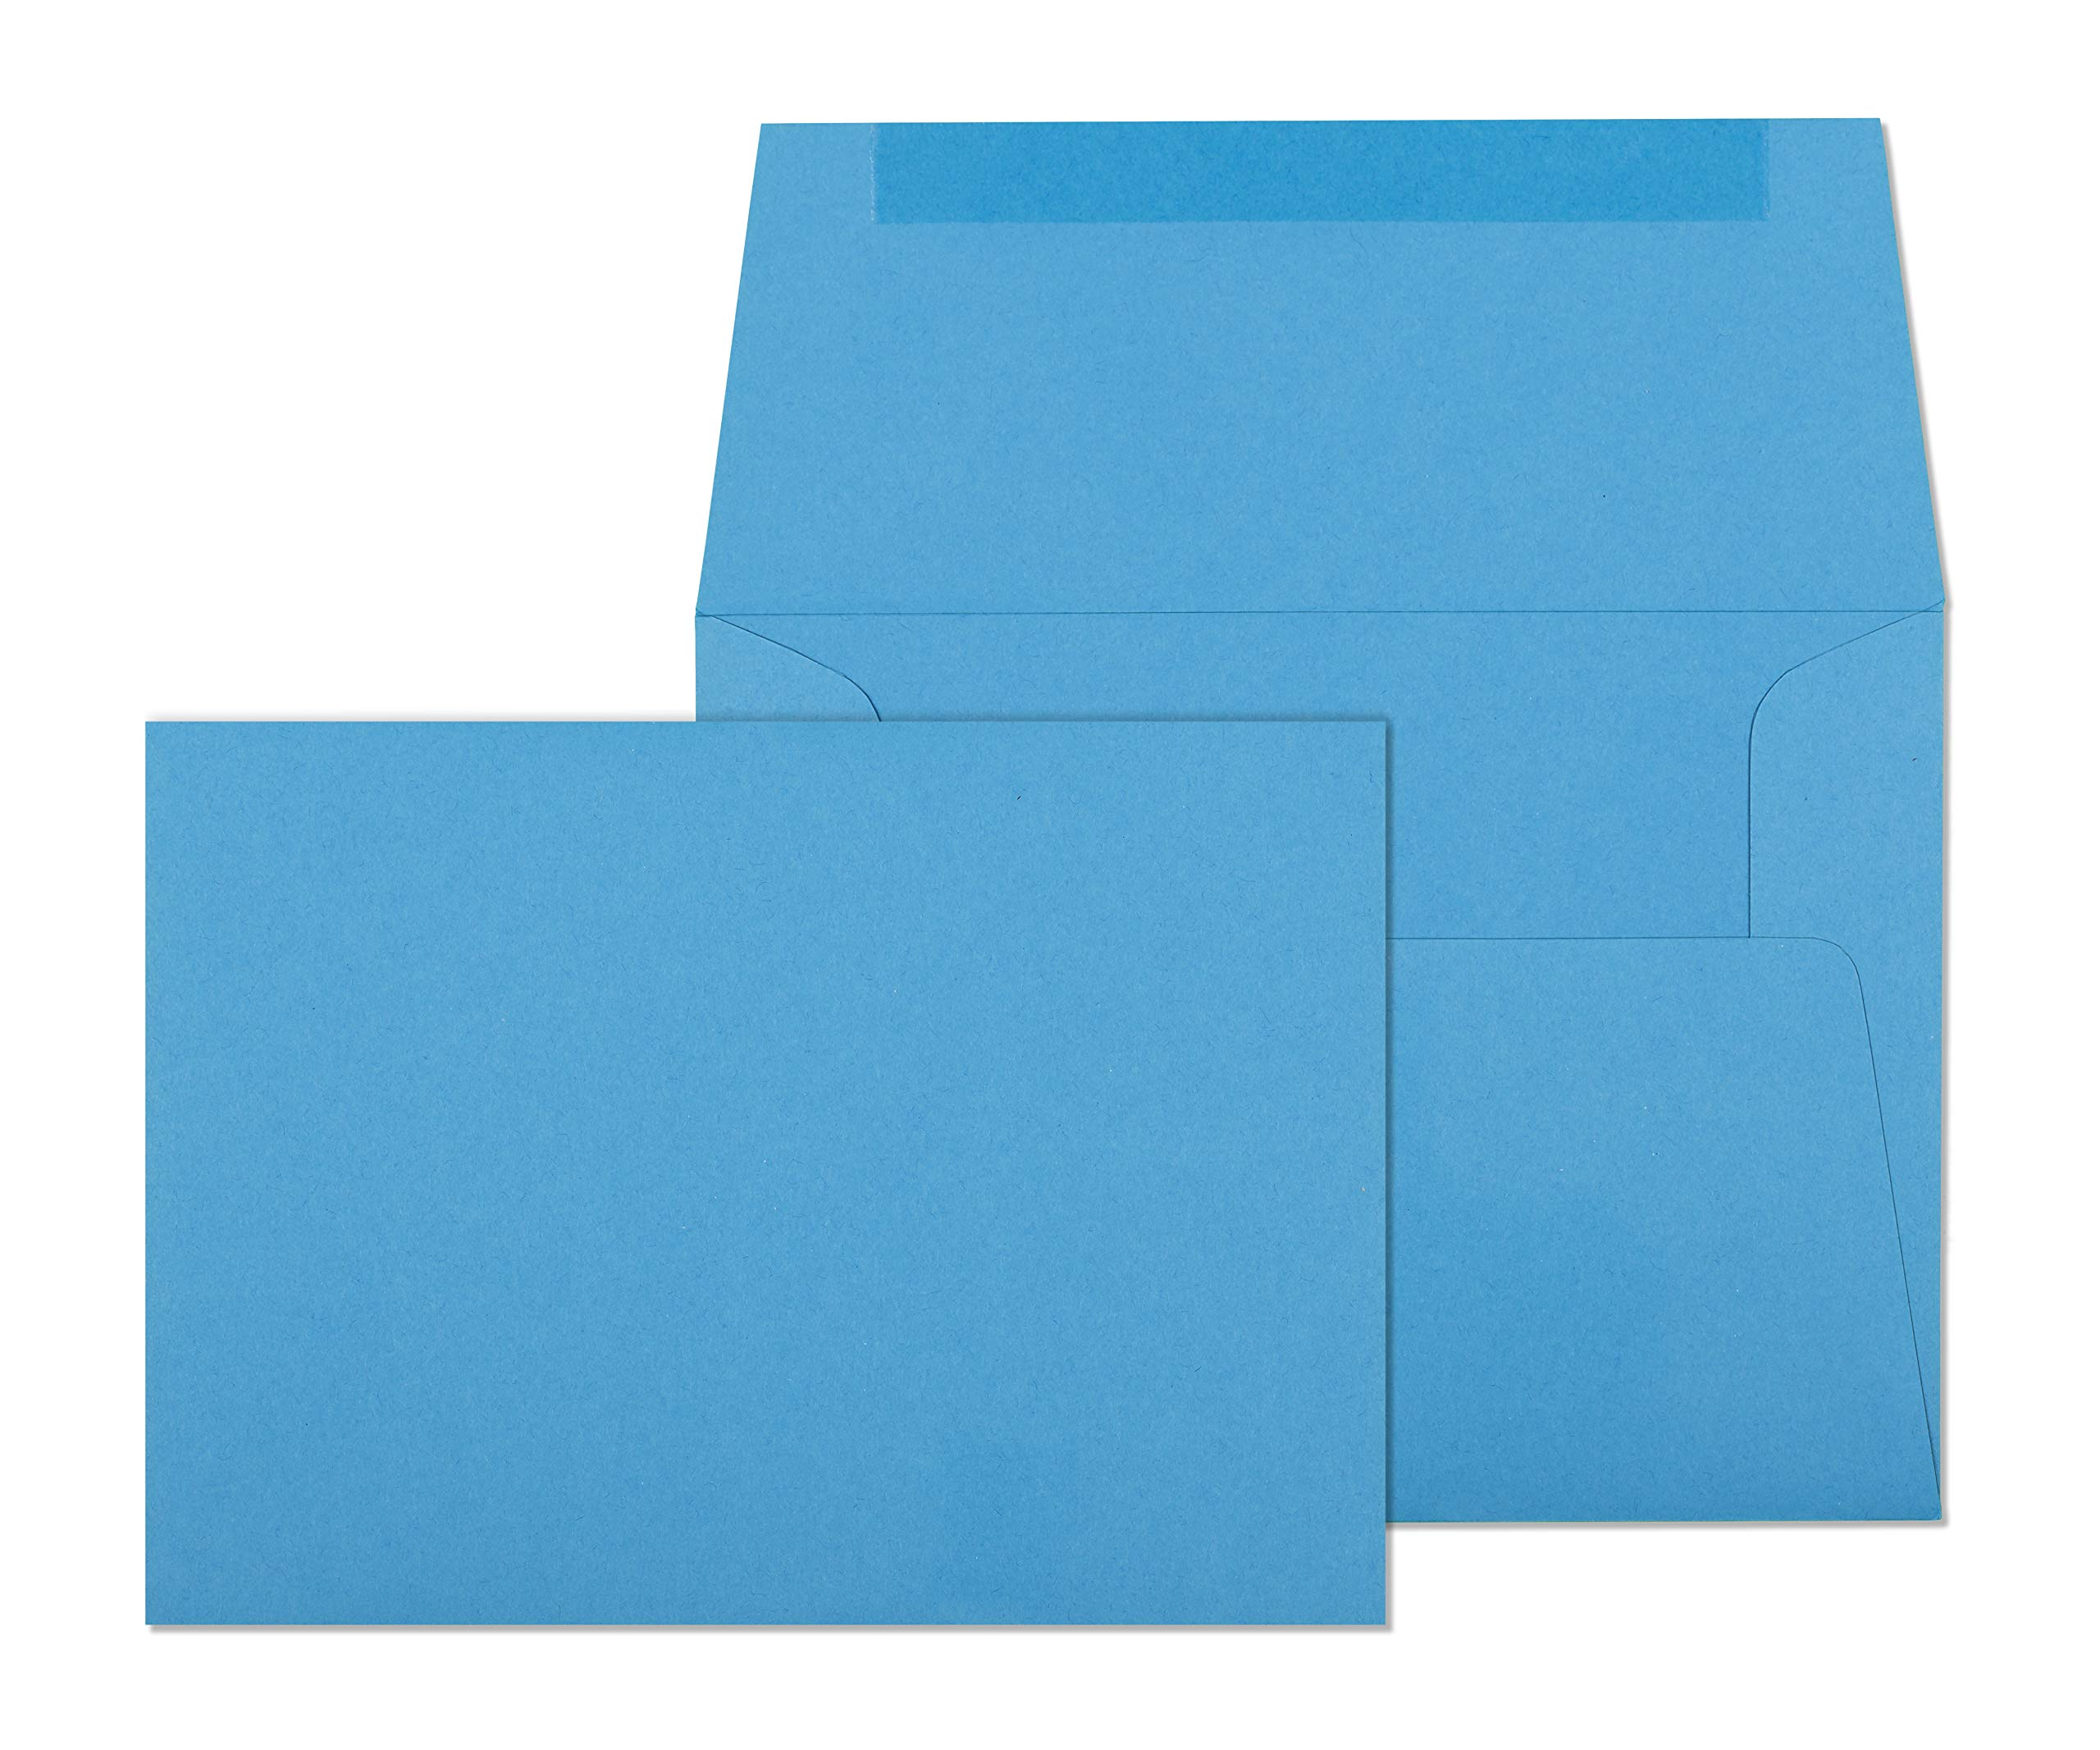 4x6 Envelopes for Invitations, Photos, Graduation, Baby Shower 4x6 Cards, Weddings,- Colored Envelope A6 4 3/4 x 6 1/2 Square Flap Pack of 50 (Pool Blue)